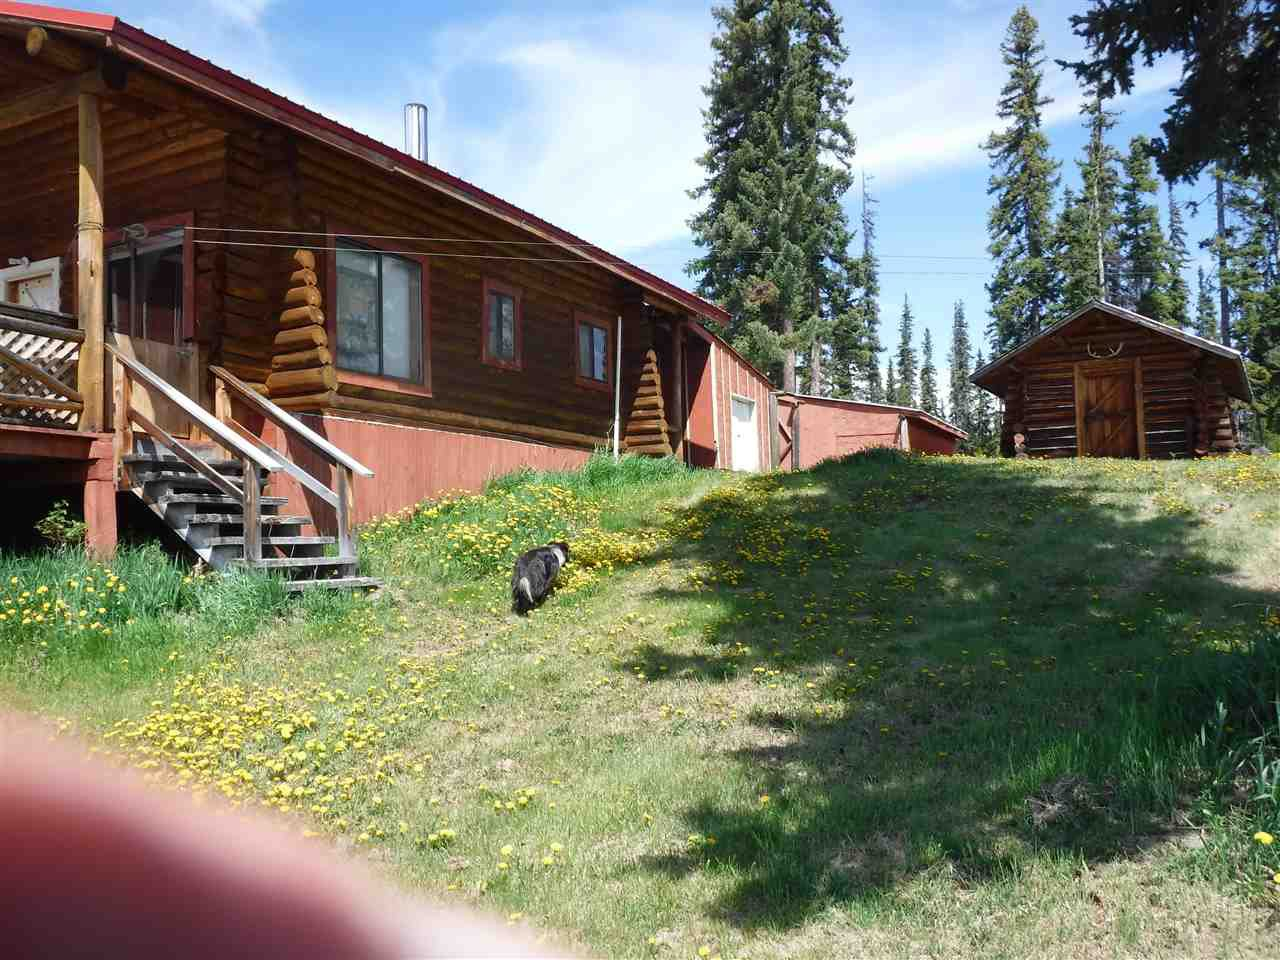 Photo 5: Photos: 2751 REED ROAD in Williams Lake: Williams Lake - Rural West House for sale (Williams Lake (Zone 27))  : MLS®# R2460768